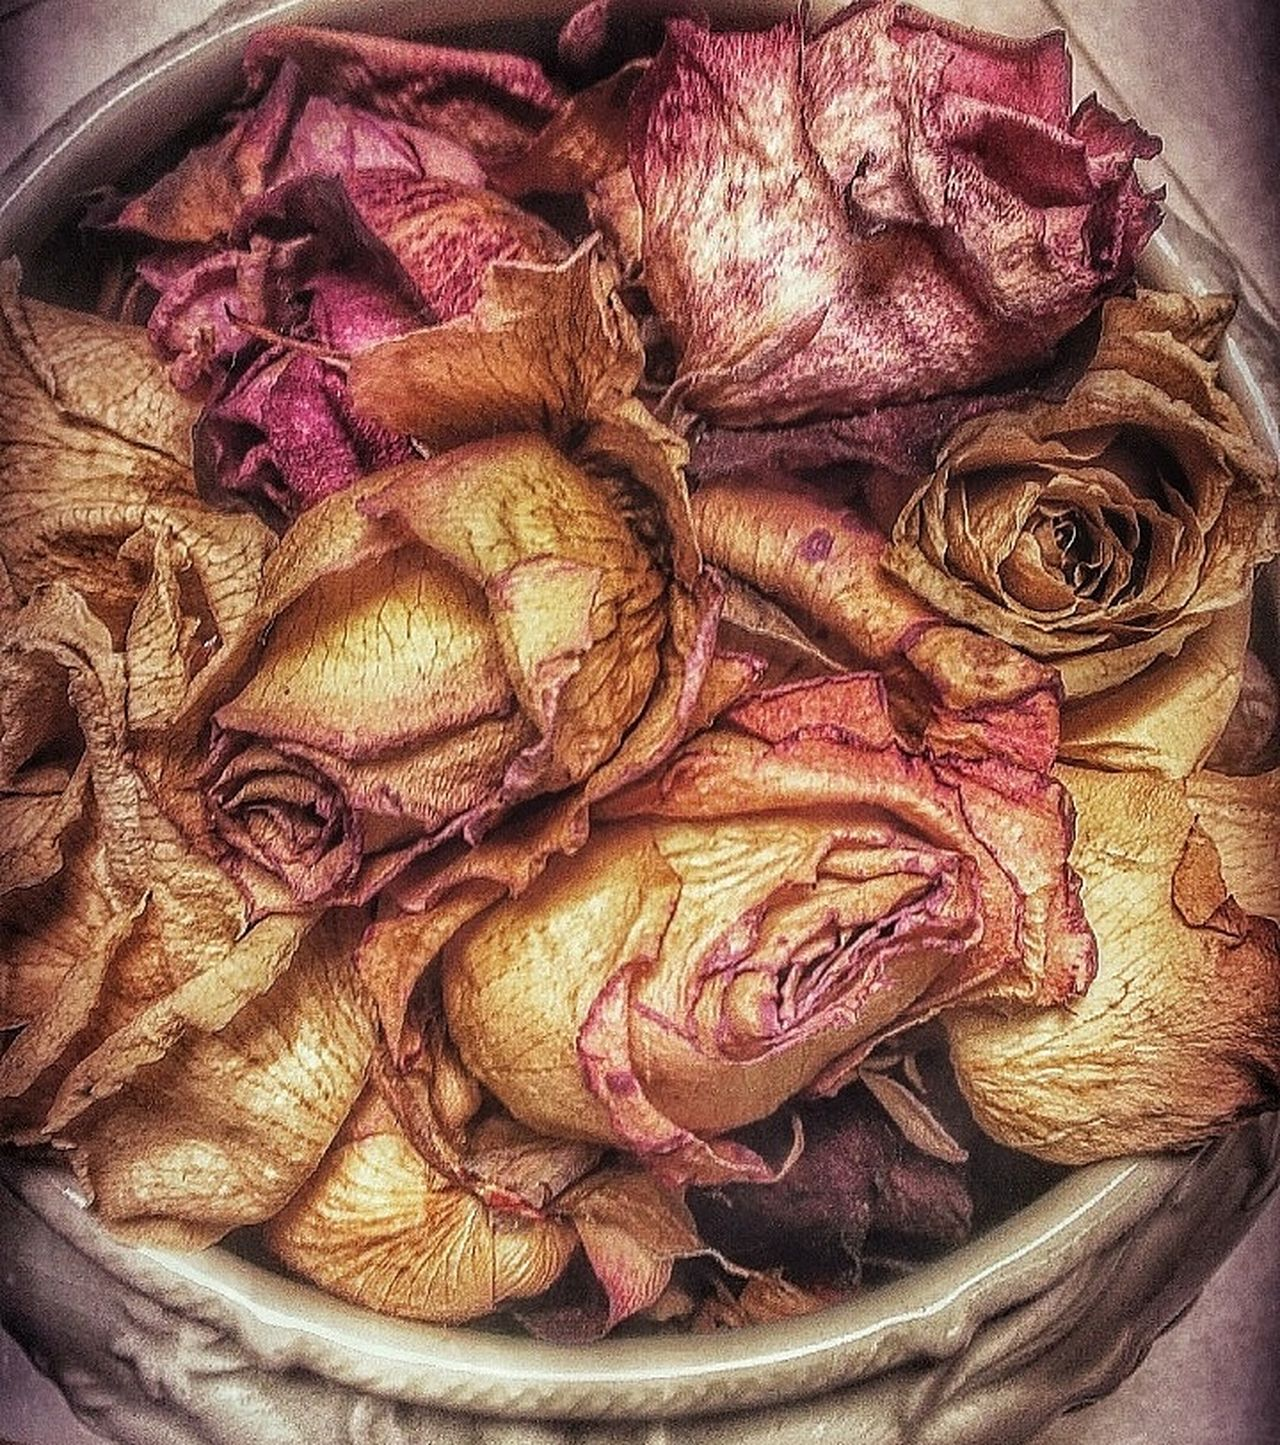 Kiss From A Rose On A Grave... Close-up Decaying Dead Flowers Dead Plant Floral Photography Dried Flowers Dead Roses Roses Decayed Beauty Floralphotography